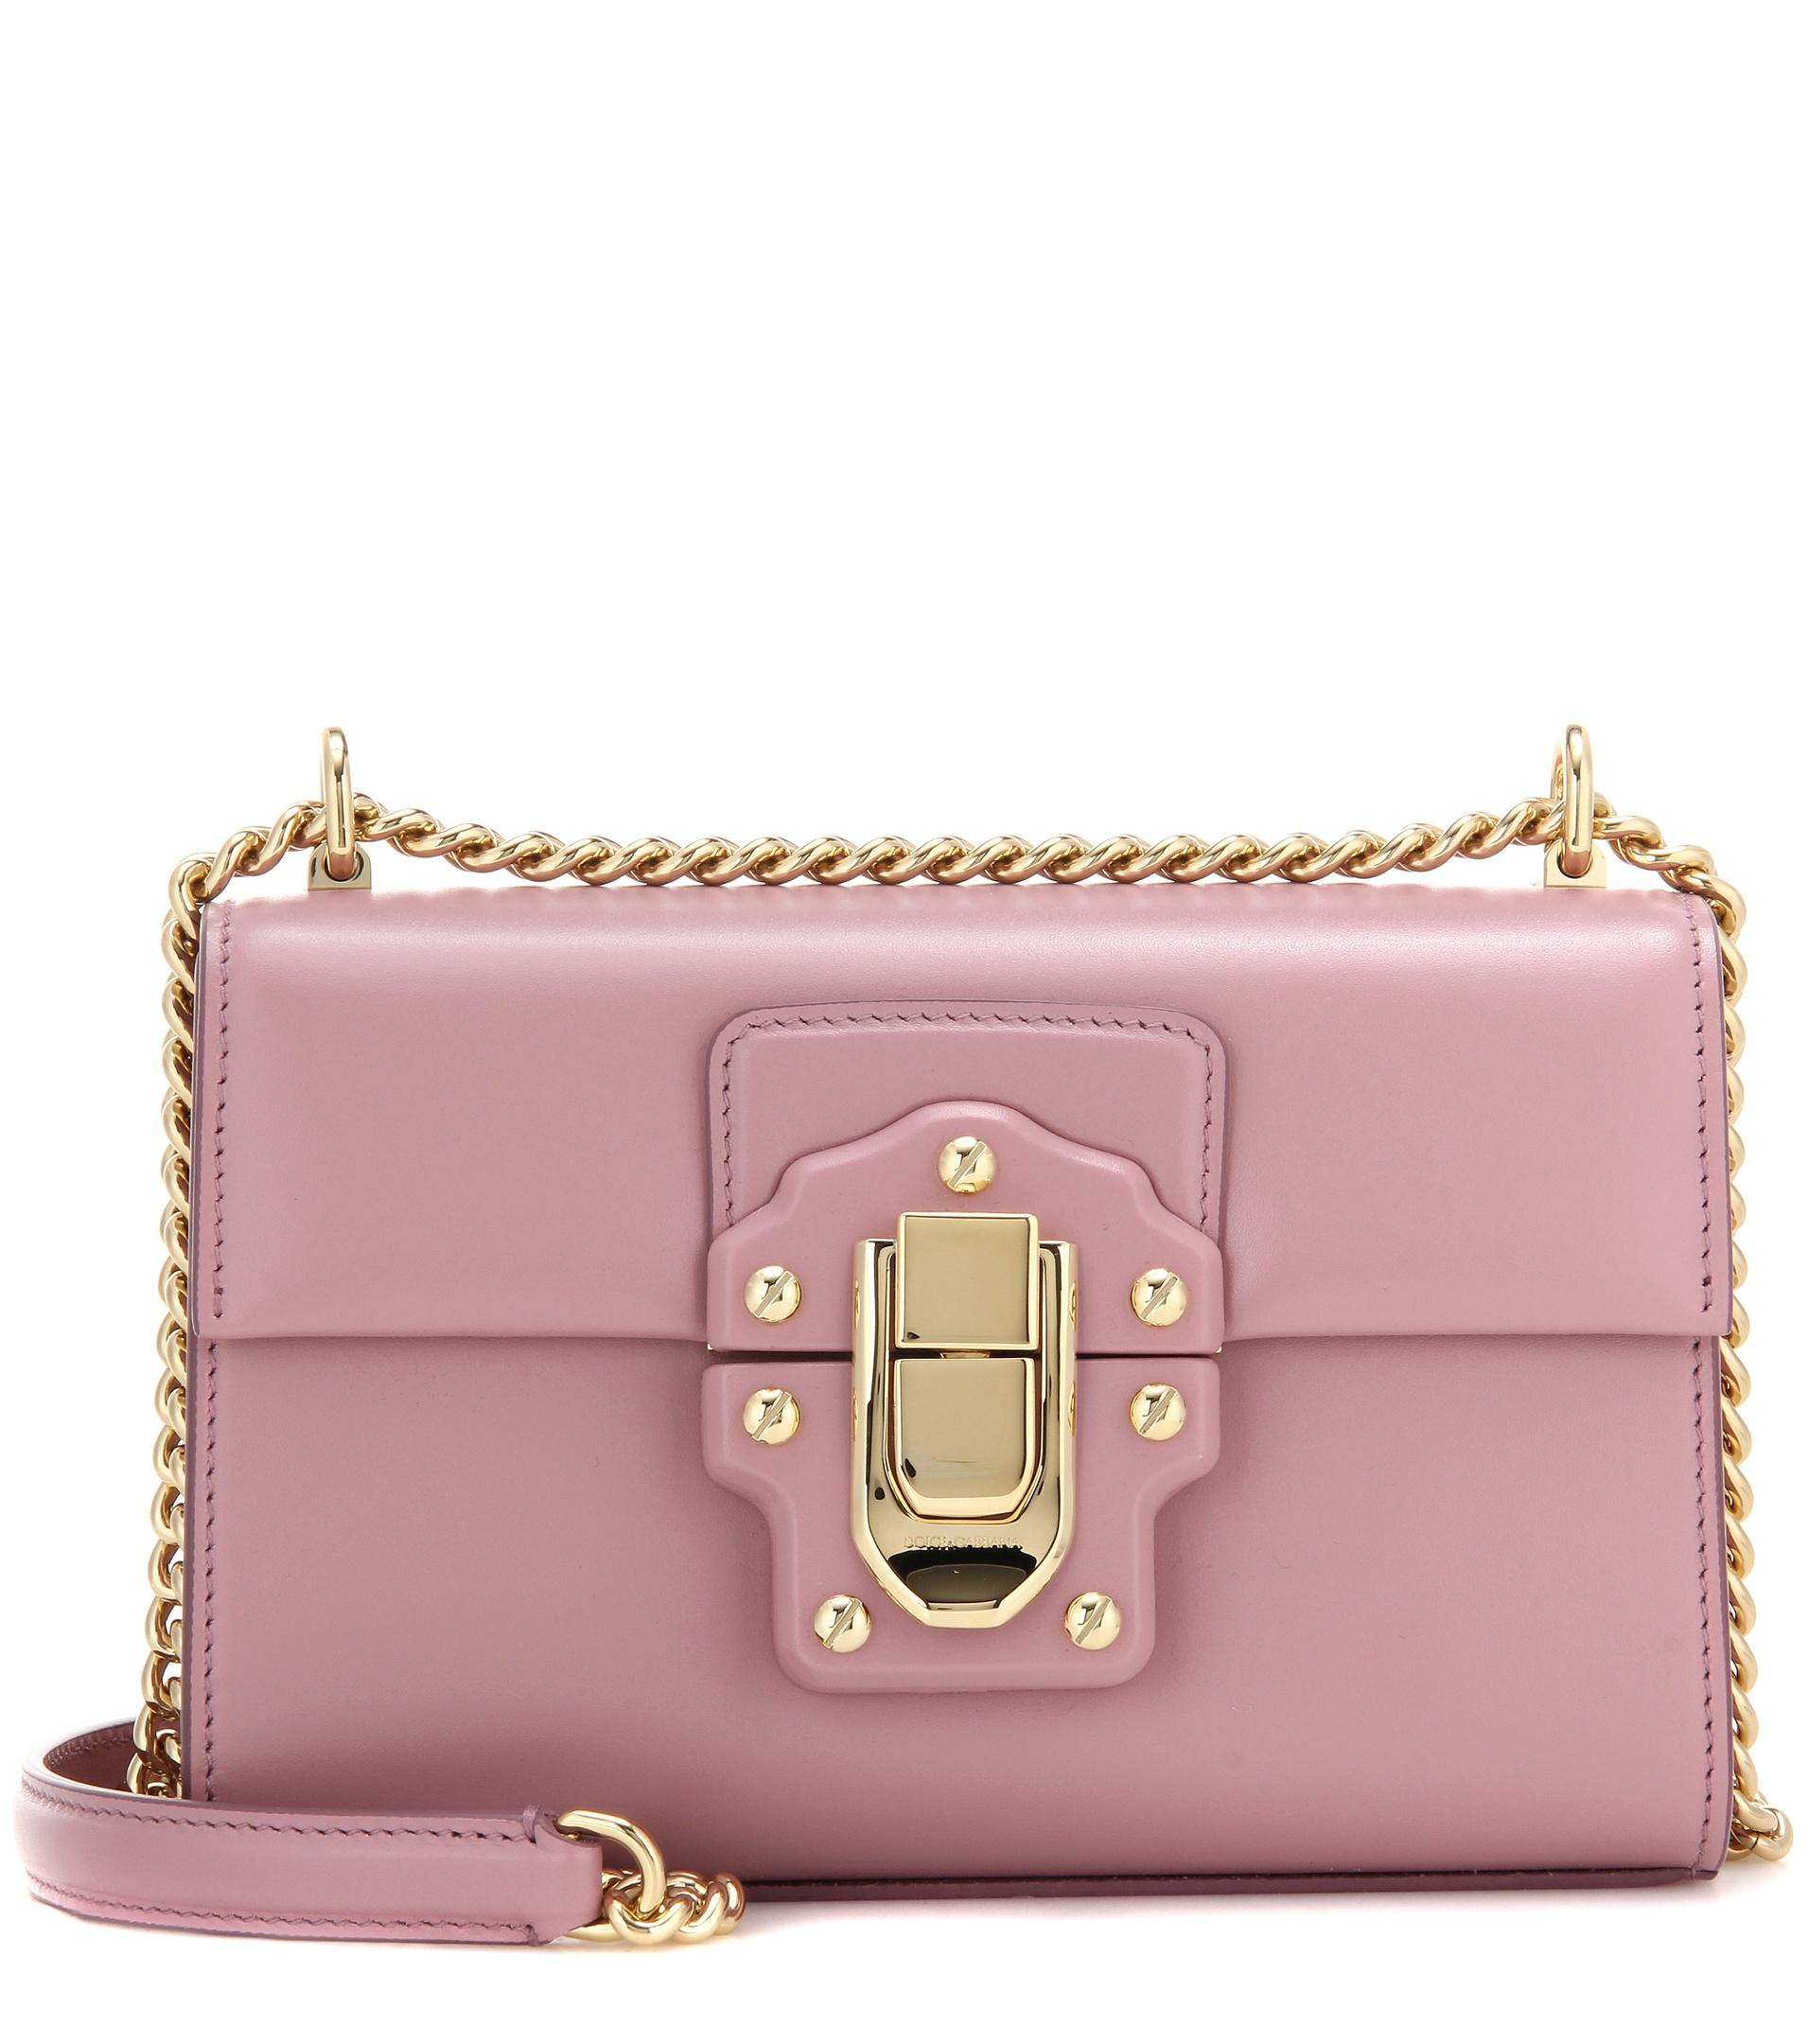 ba223f3f0cc1 Dolce   Gabbana Lucia Small Leather Shoulder Bag in Pink - Lyst